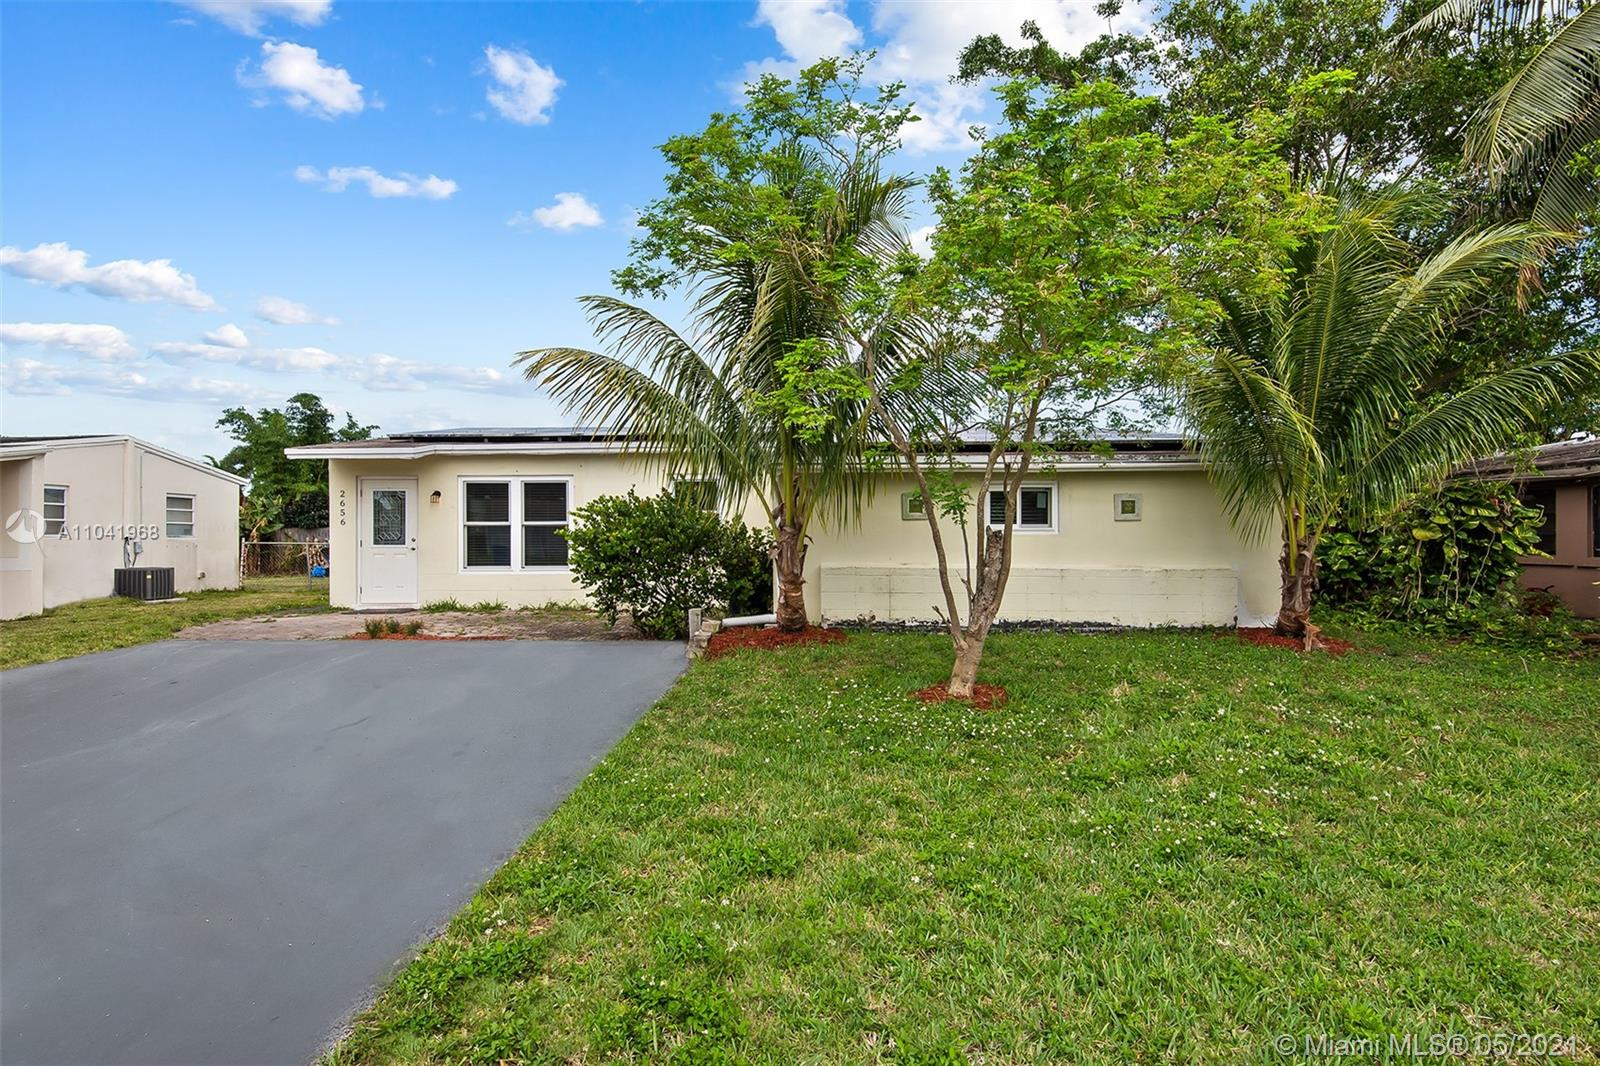 2656 NW 63rd Ave, Margate, Florida 33063